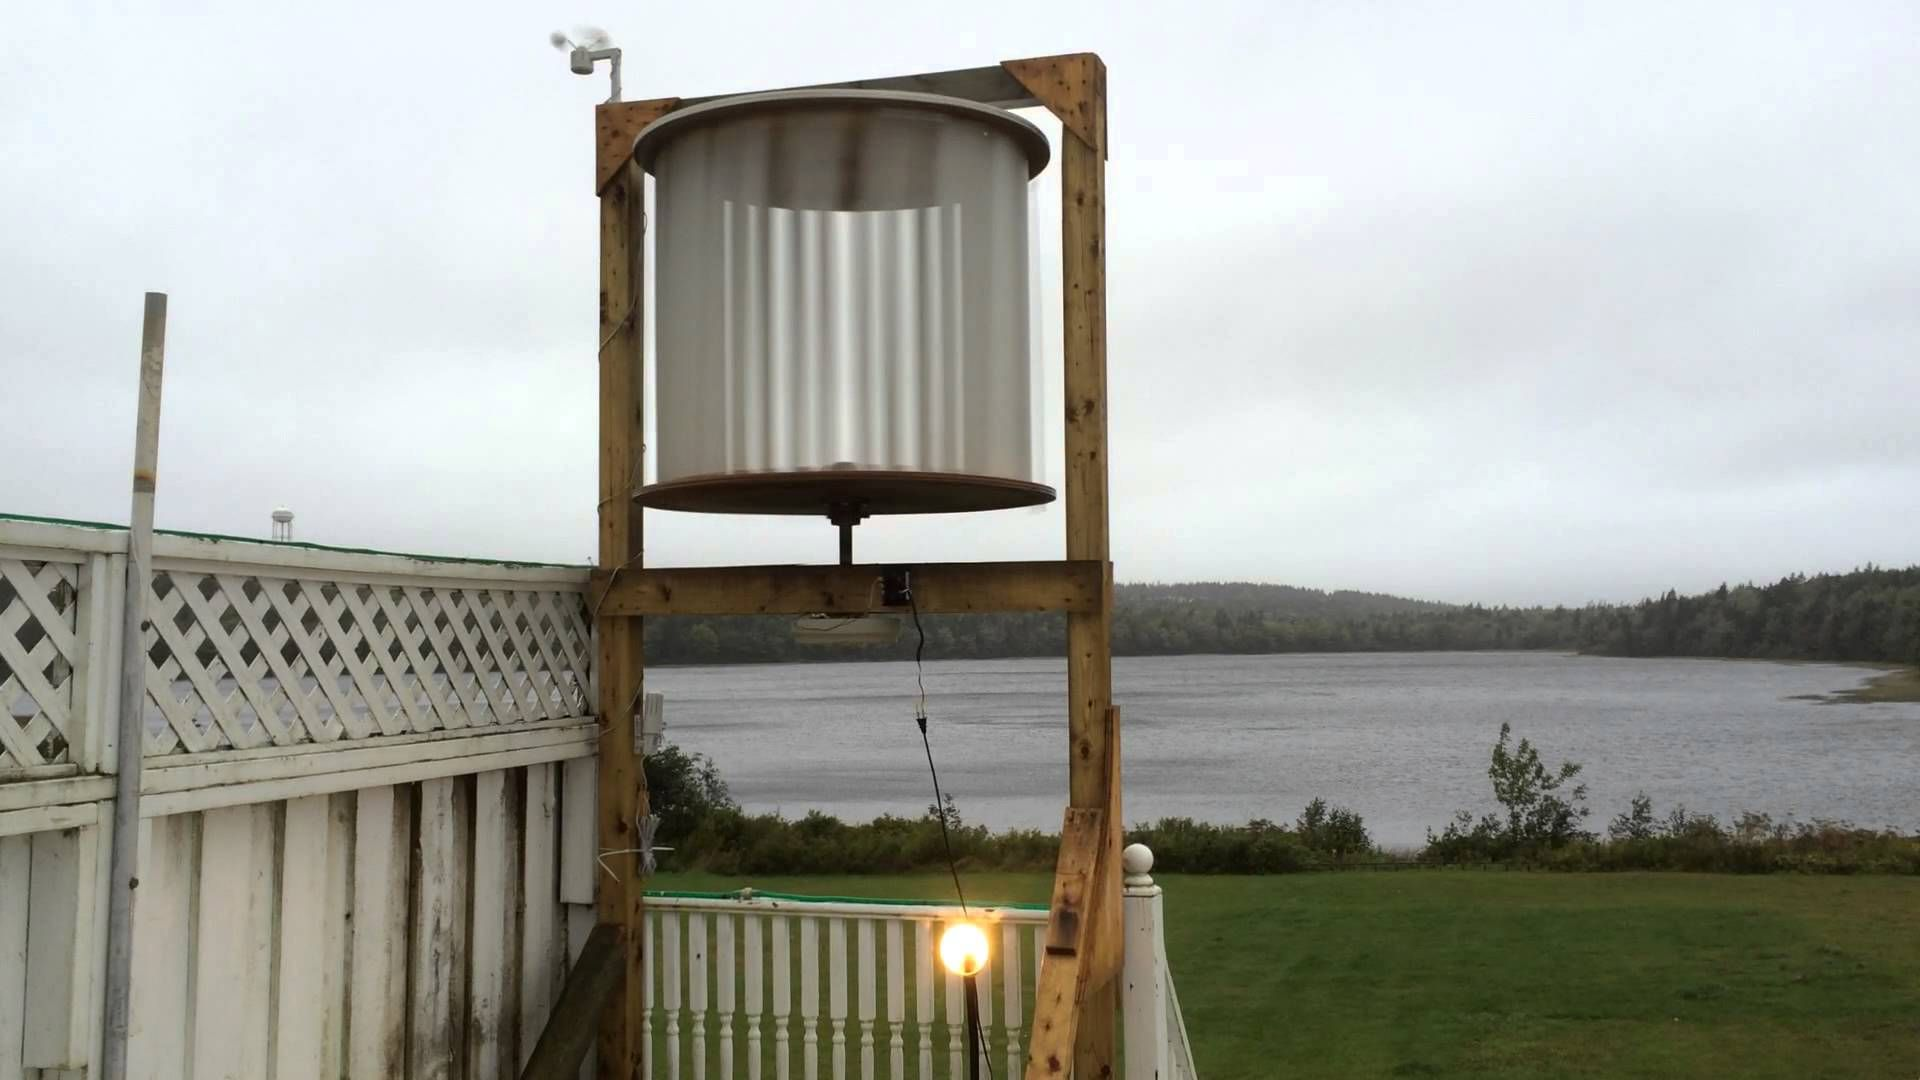 Homemade vertical axis wind turbine design submitted ...